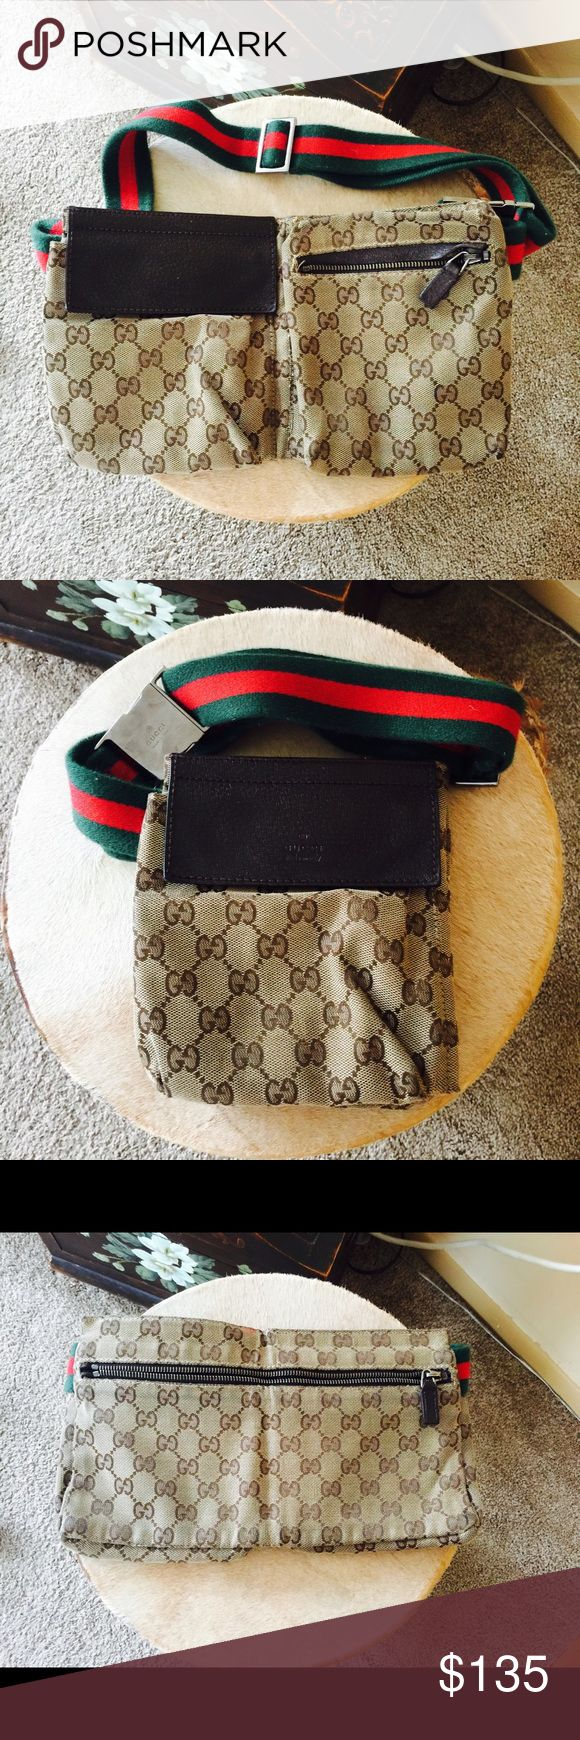 Authentic Gucci fanny pack Authentic Gucci fanny pack for the stylish woman. This fanny pack is an original. Still in great condition for the Gucci lover in you. This is unisex. Bag retails for $300 on eBay right now slightly used. Gucci Bags